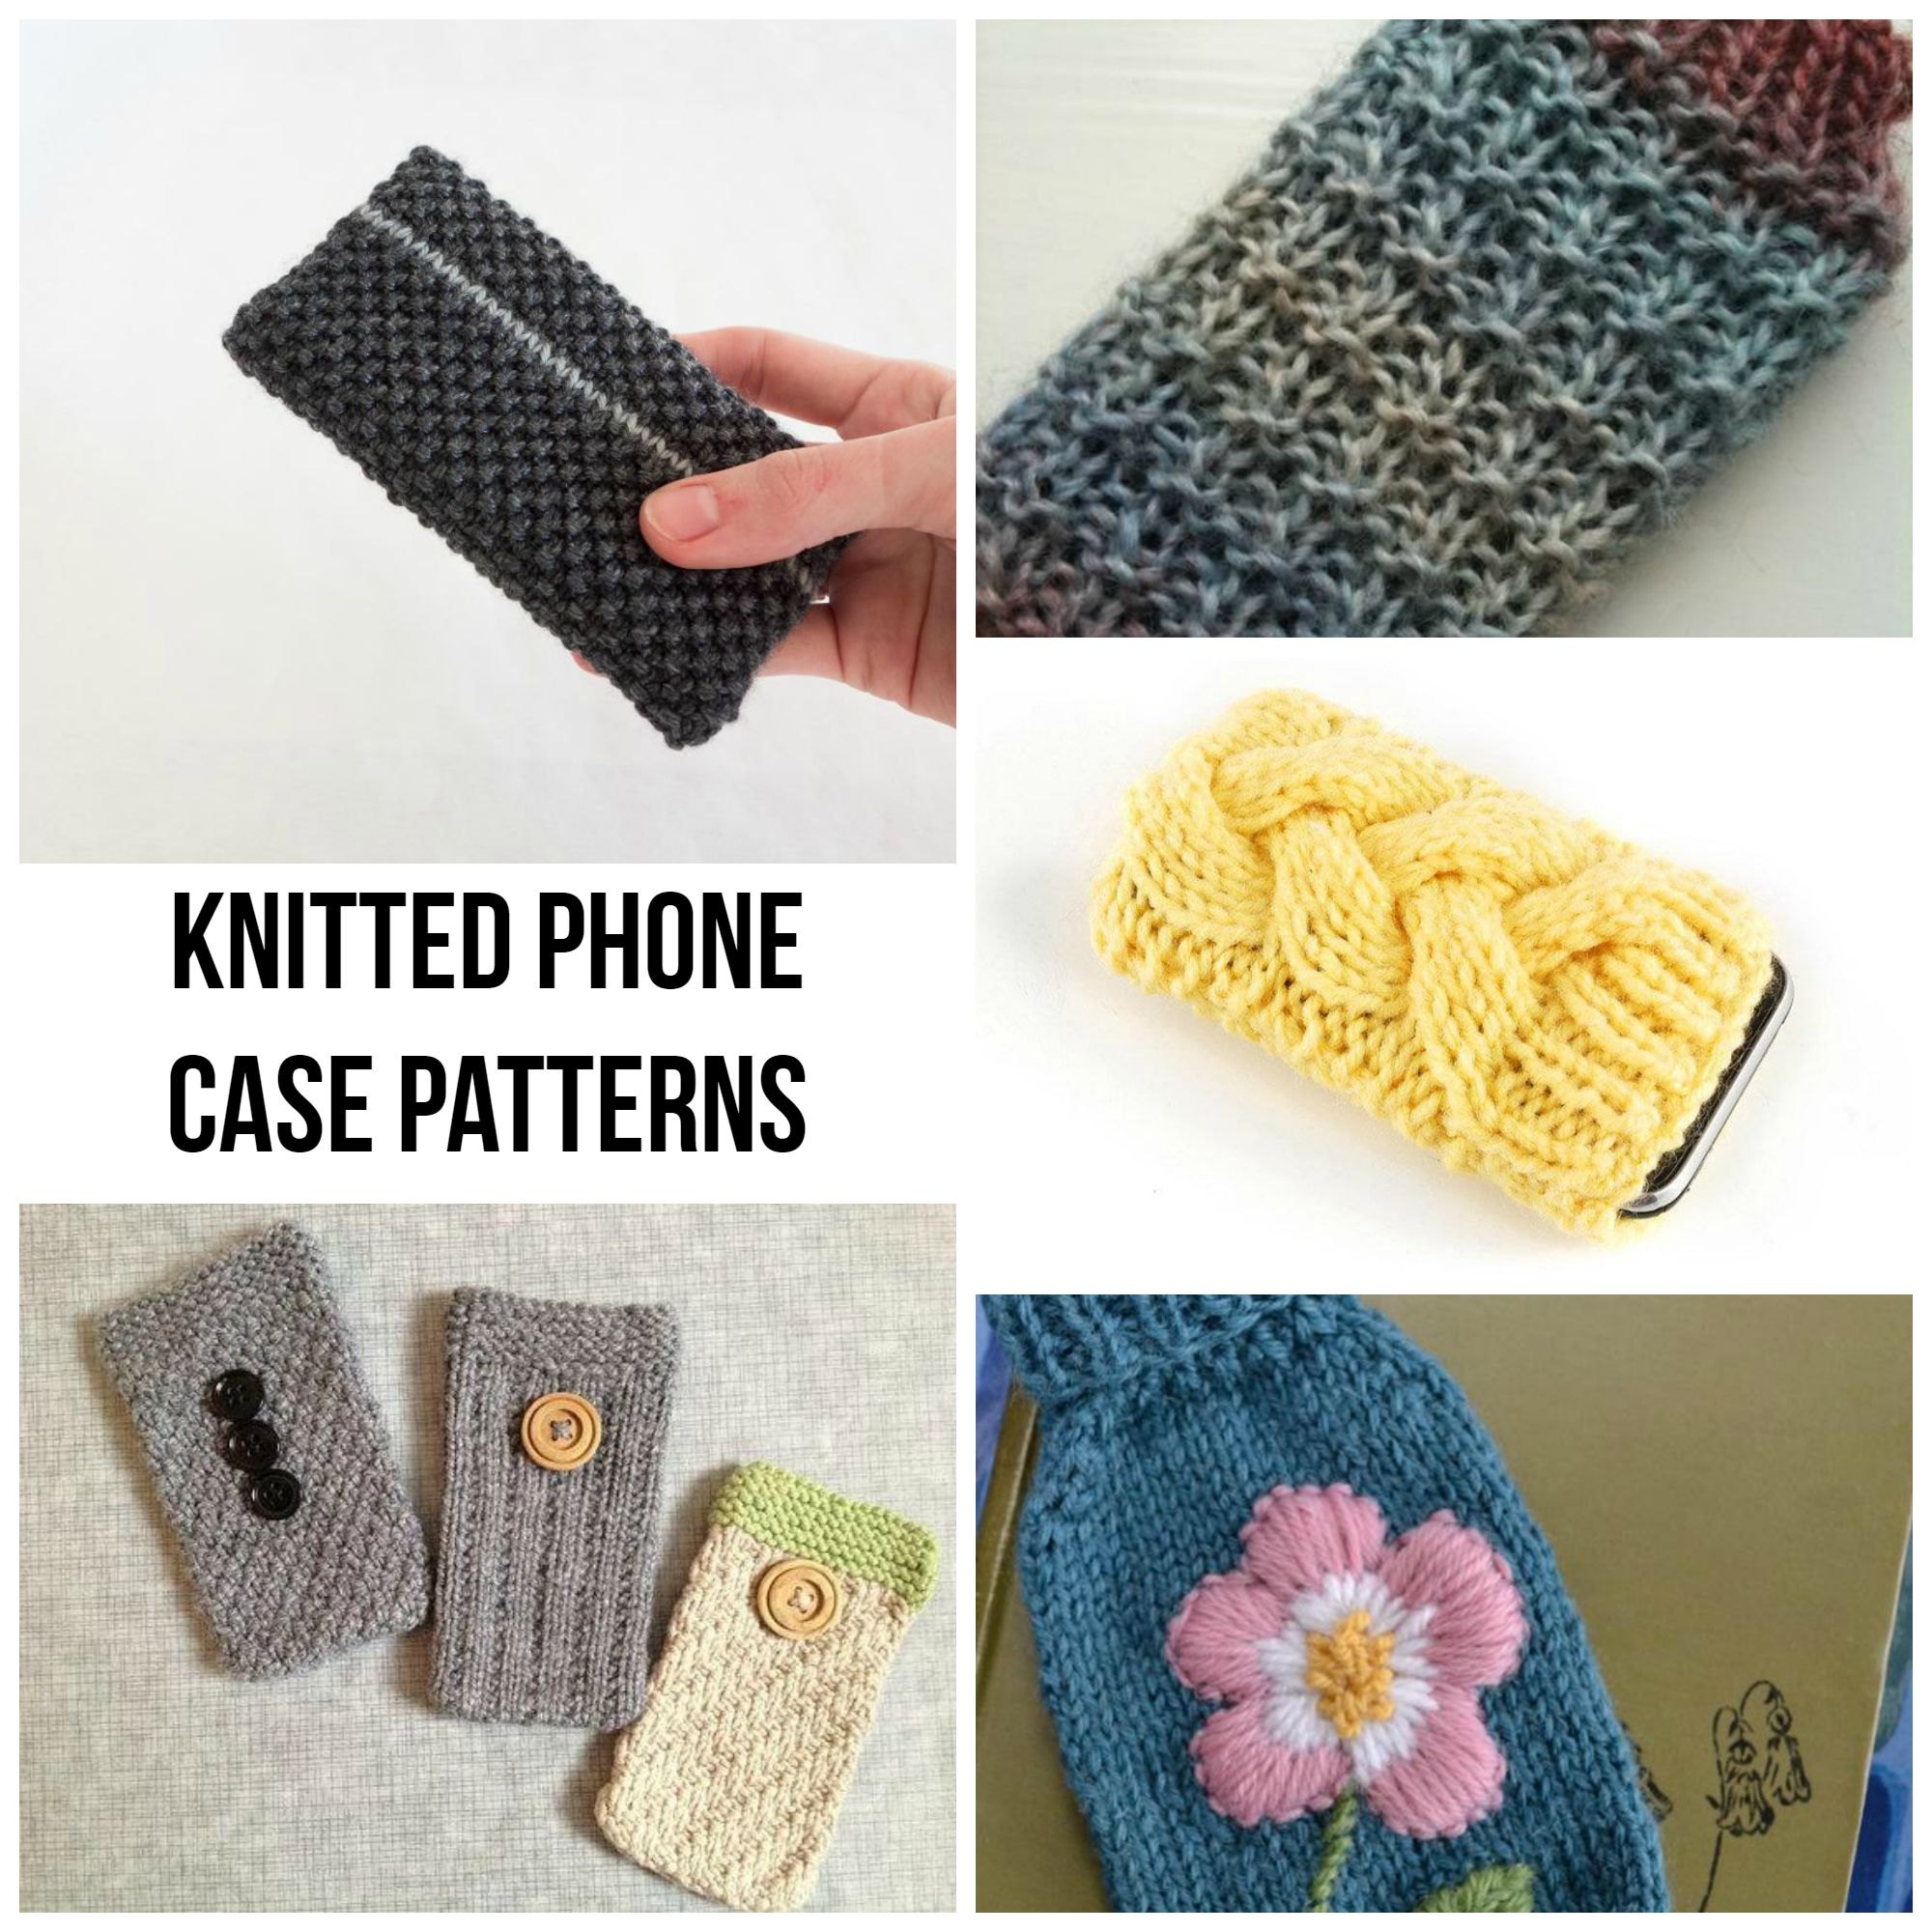 Knitted Phone Case Patterns